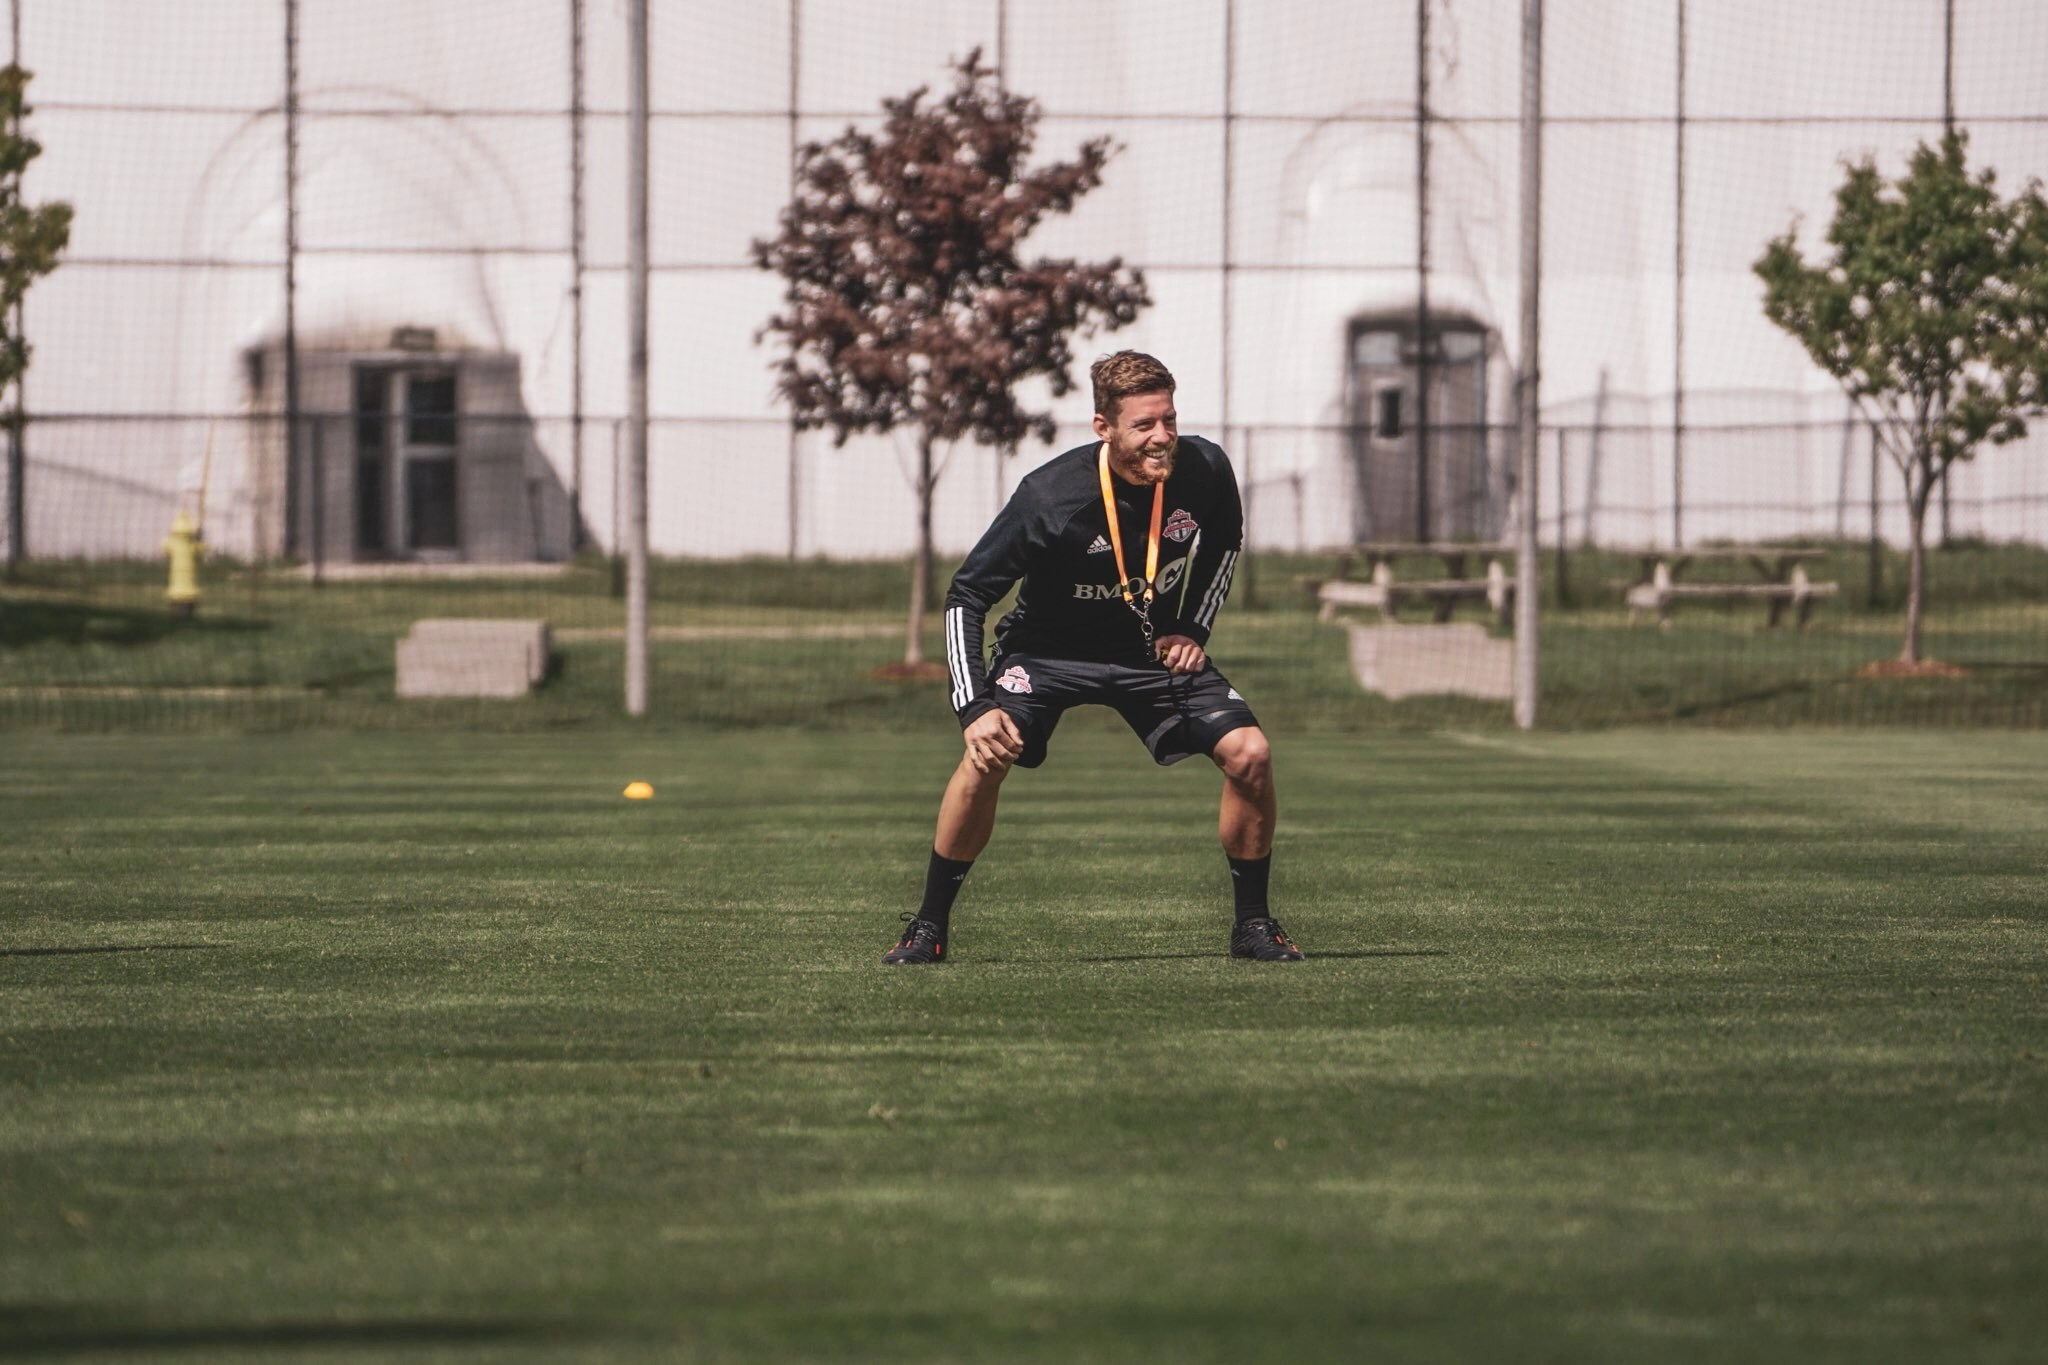 Tom Williams | Head of Sport Science and Research at LA Galaxy